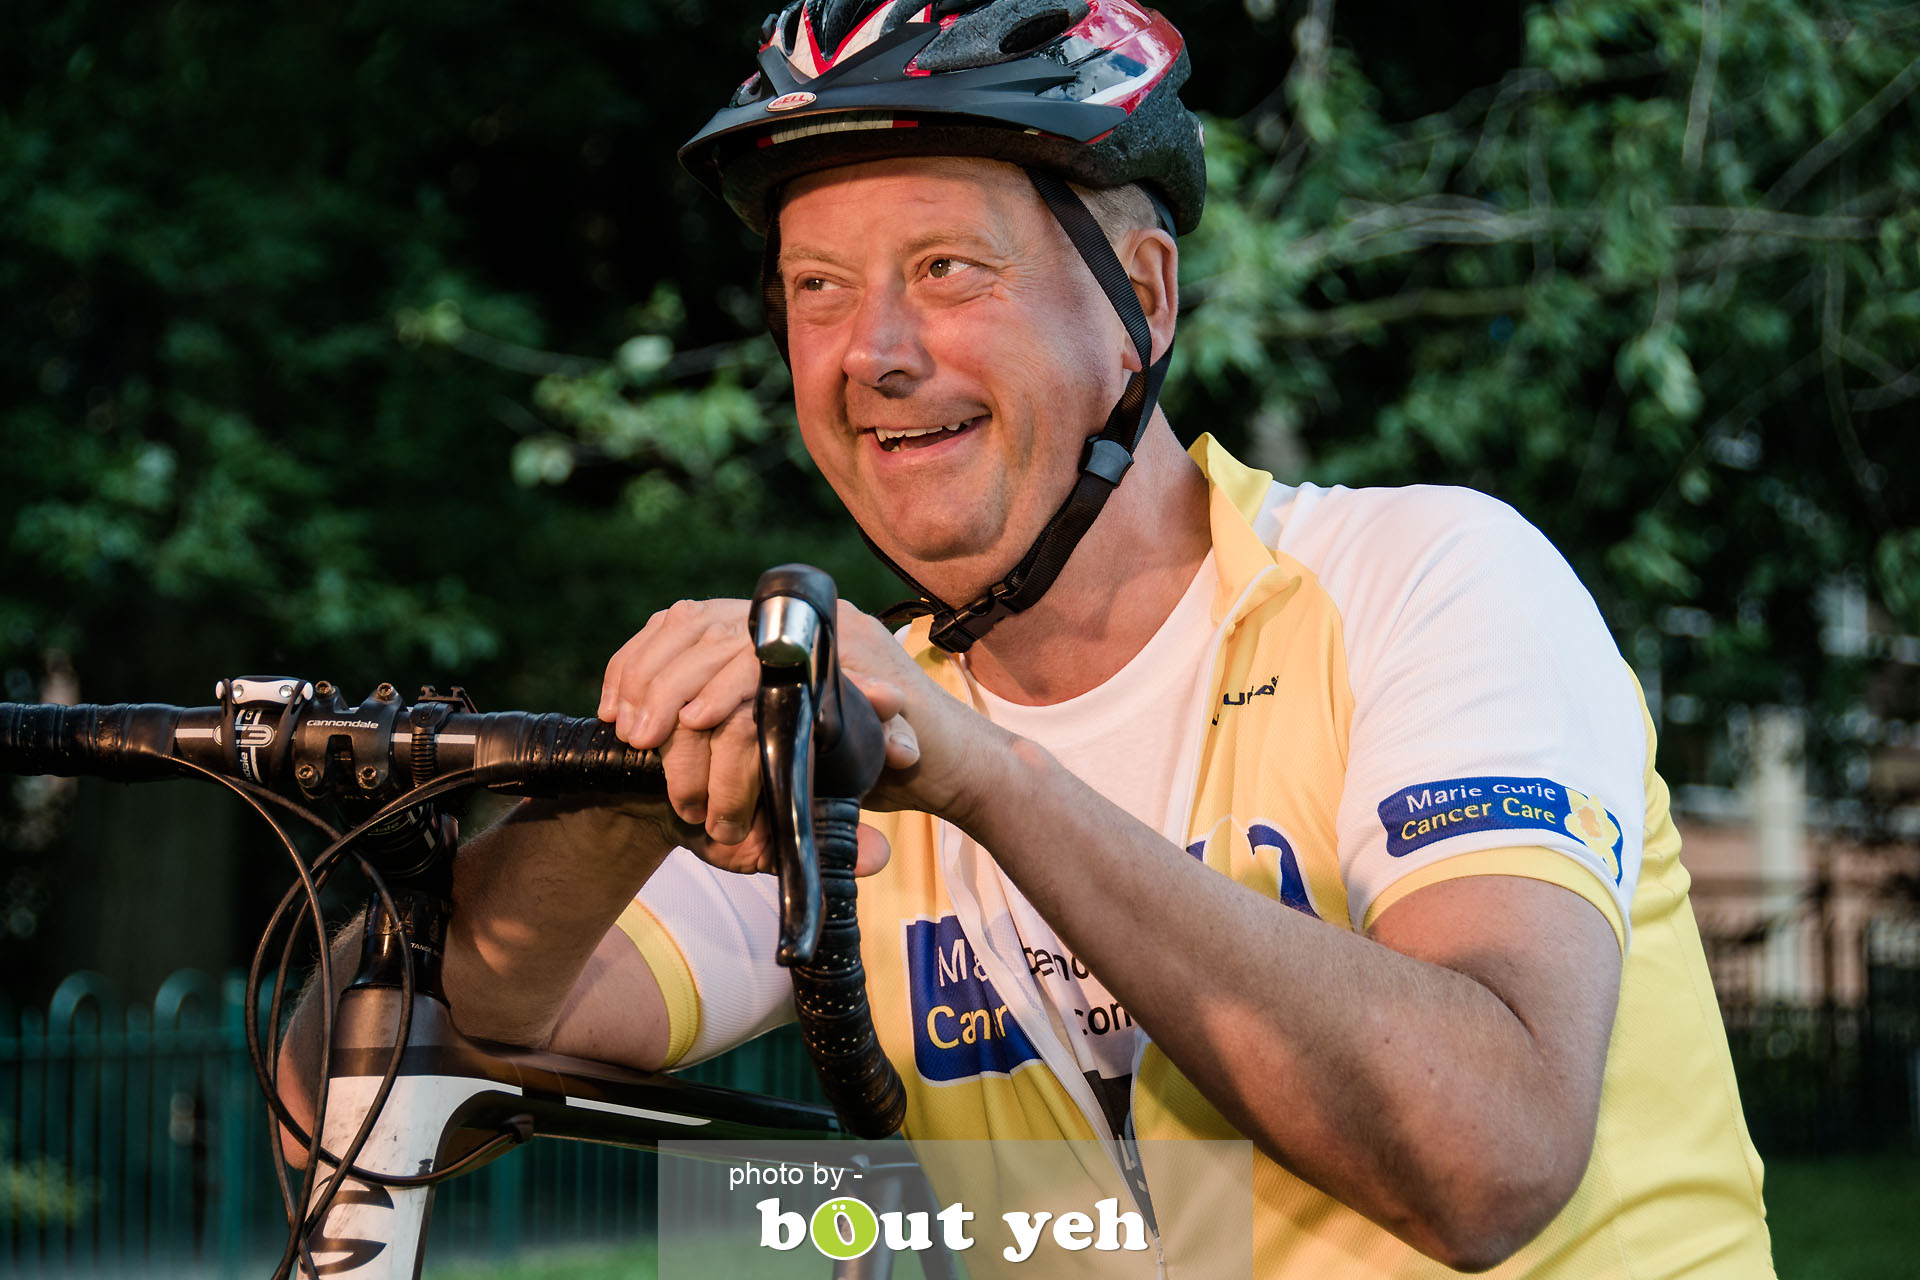 Hugo, of Bed and Bike Cycling Tours, at Botanic Gardens, Belfast, Northern Ireland - photo 7131.